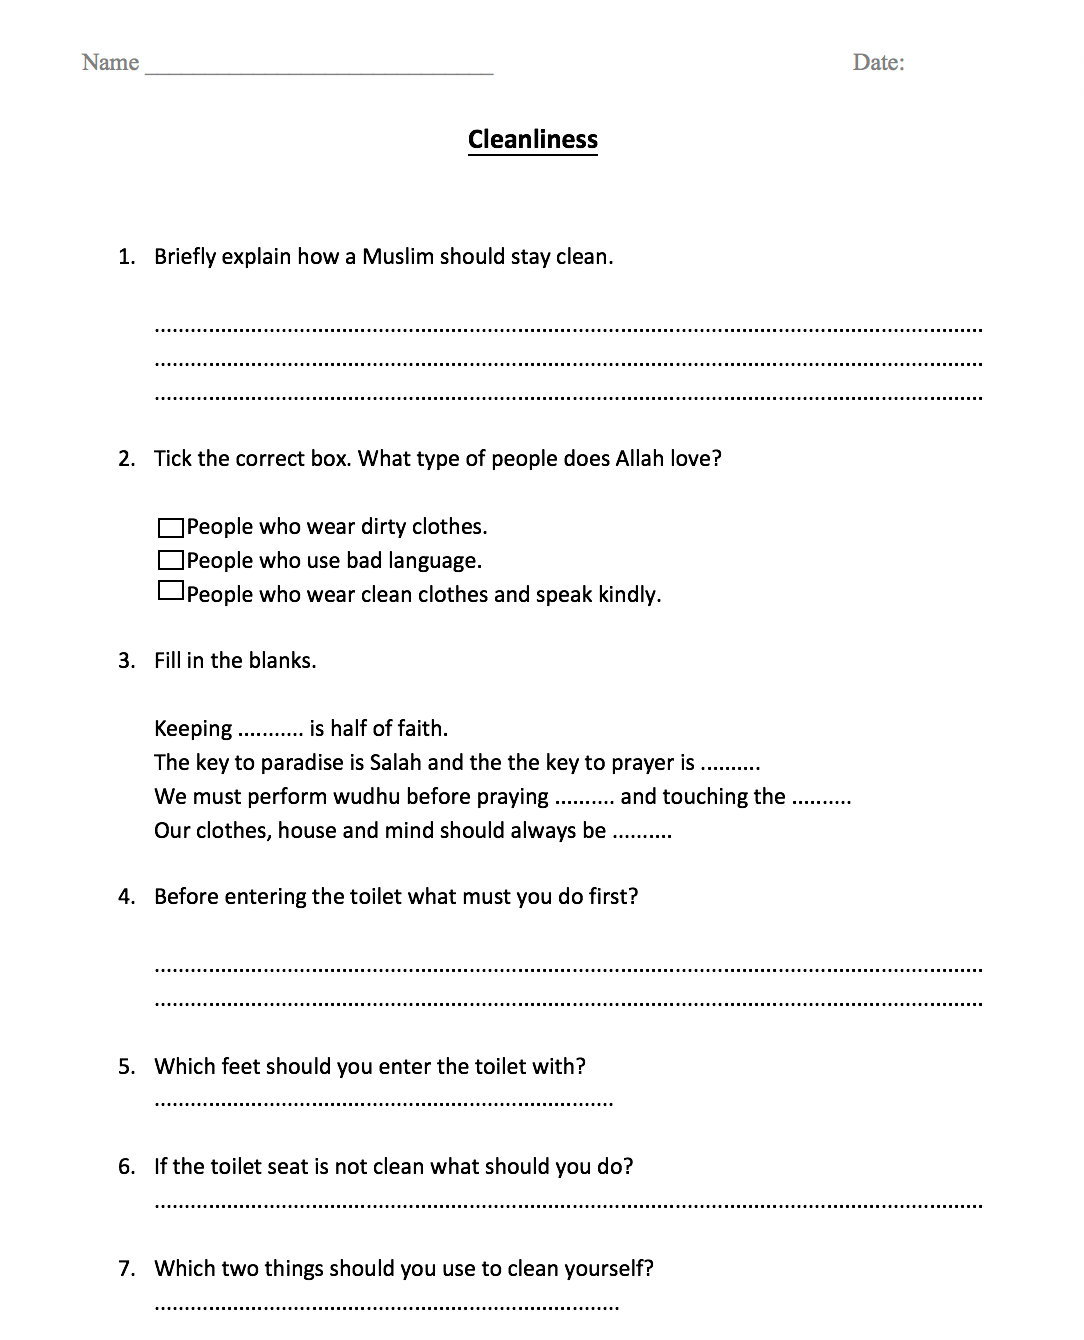 Cleanliness Manners Of Using The Toilet Worksheet